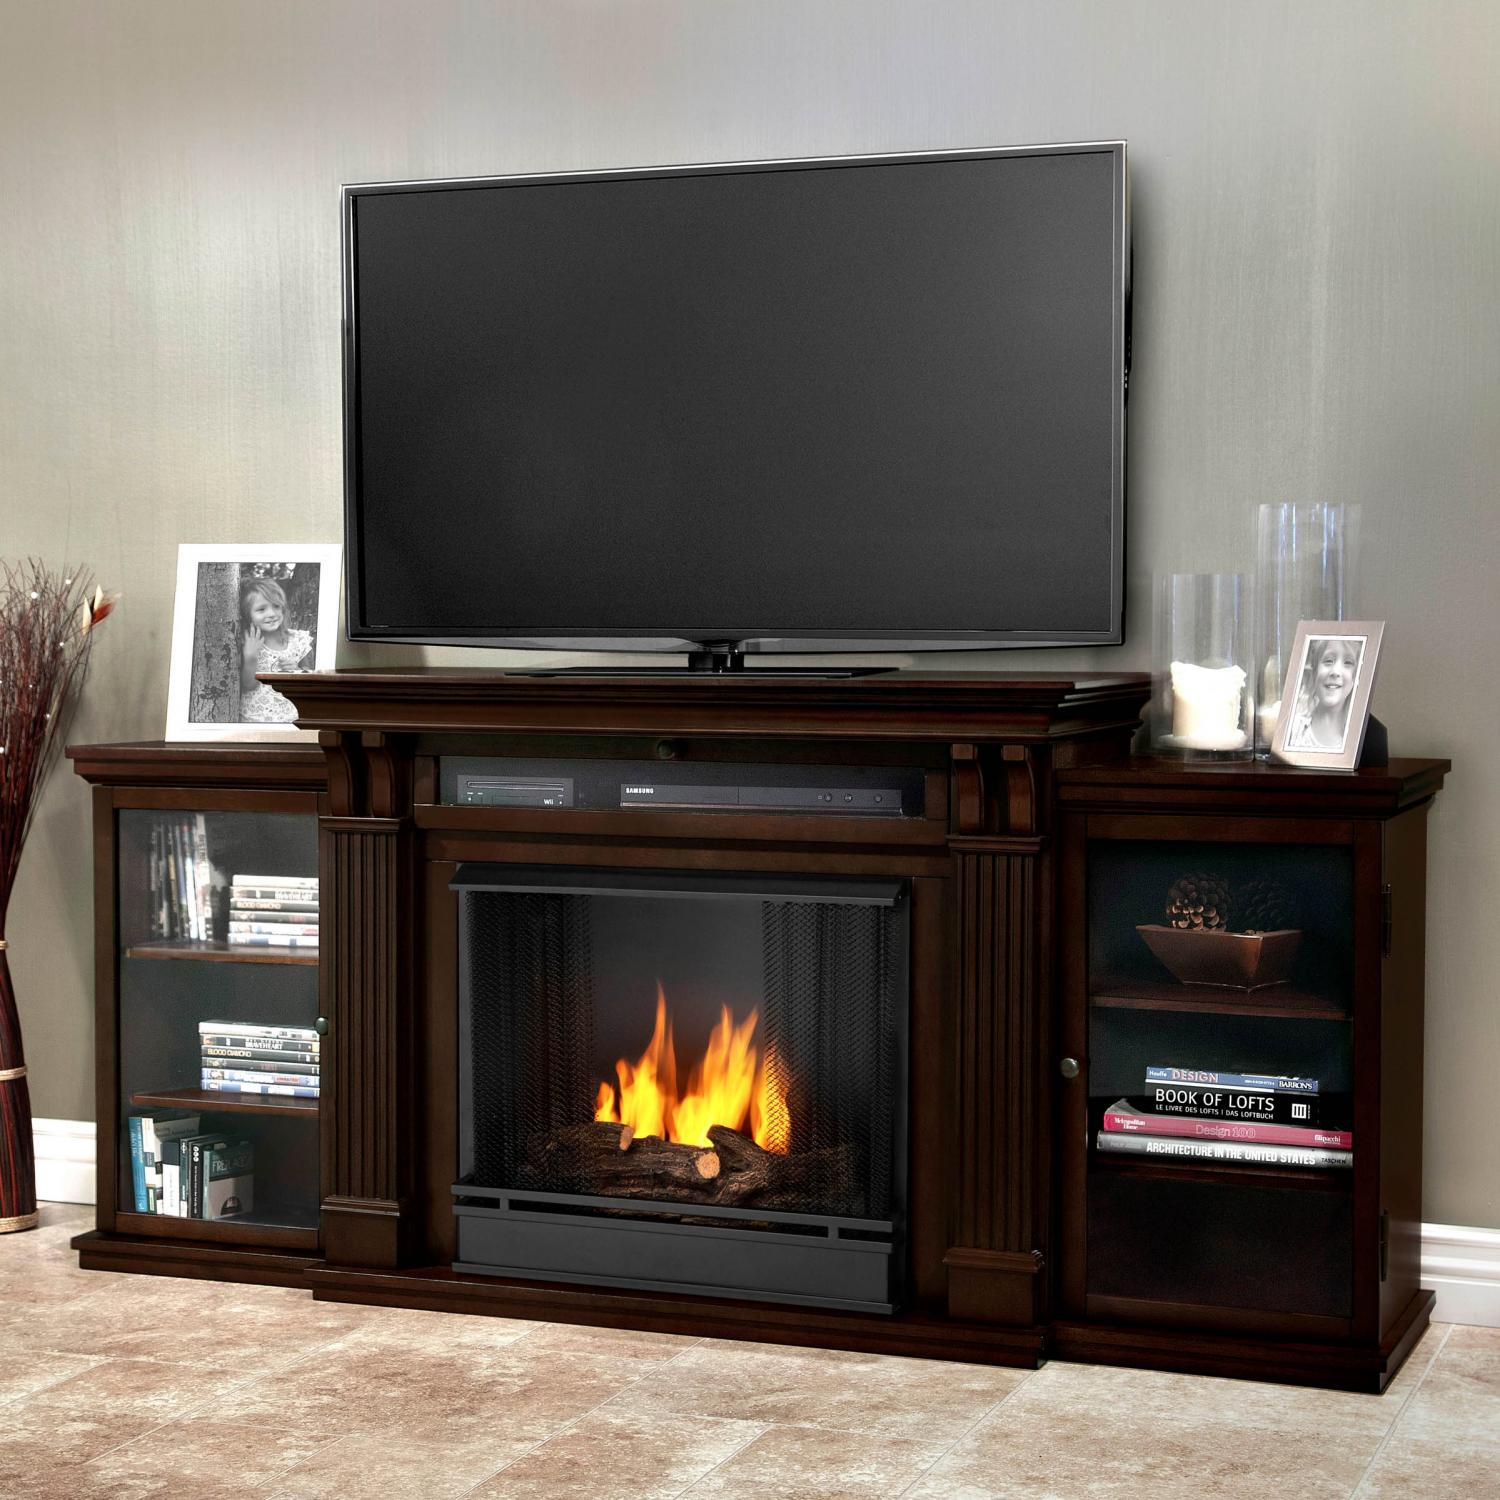 Picture of Real Flame Ashley 67-Inch Gel Fireplace Media Console - Dark Walnut